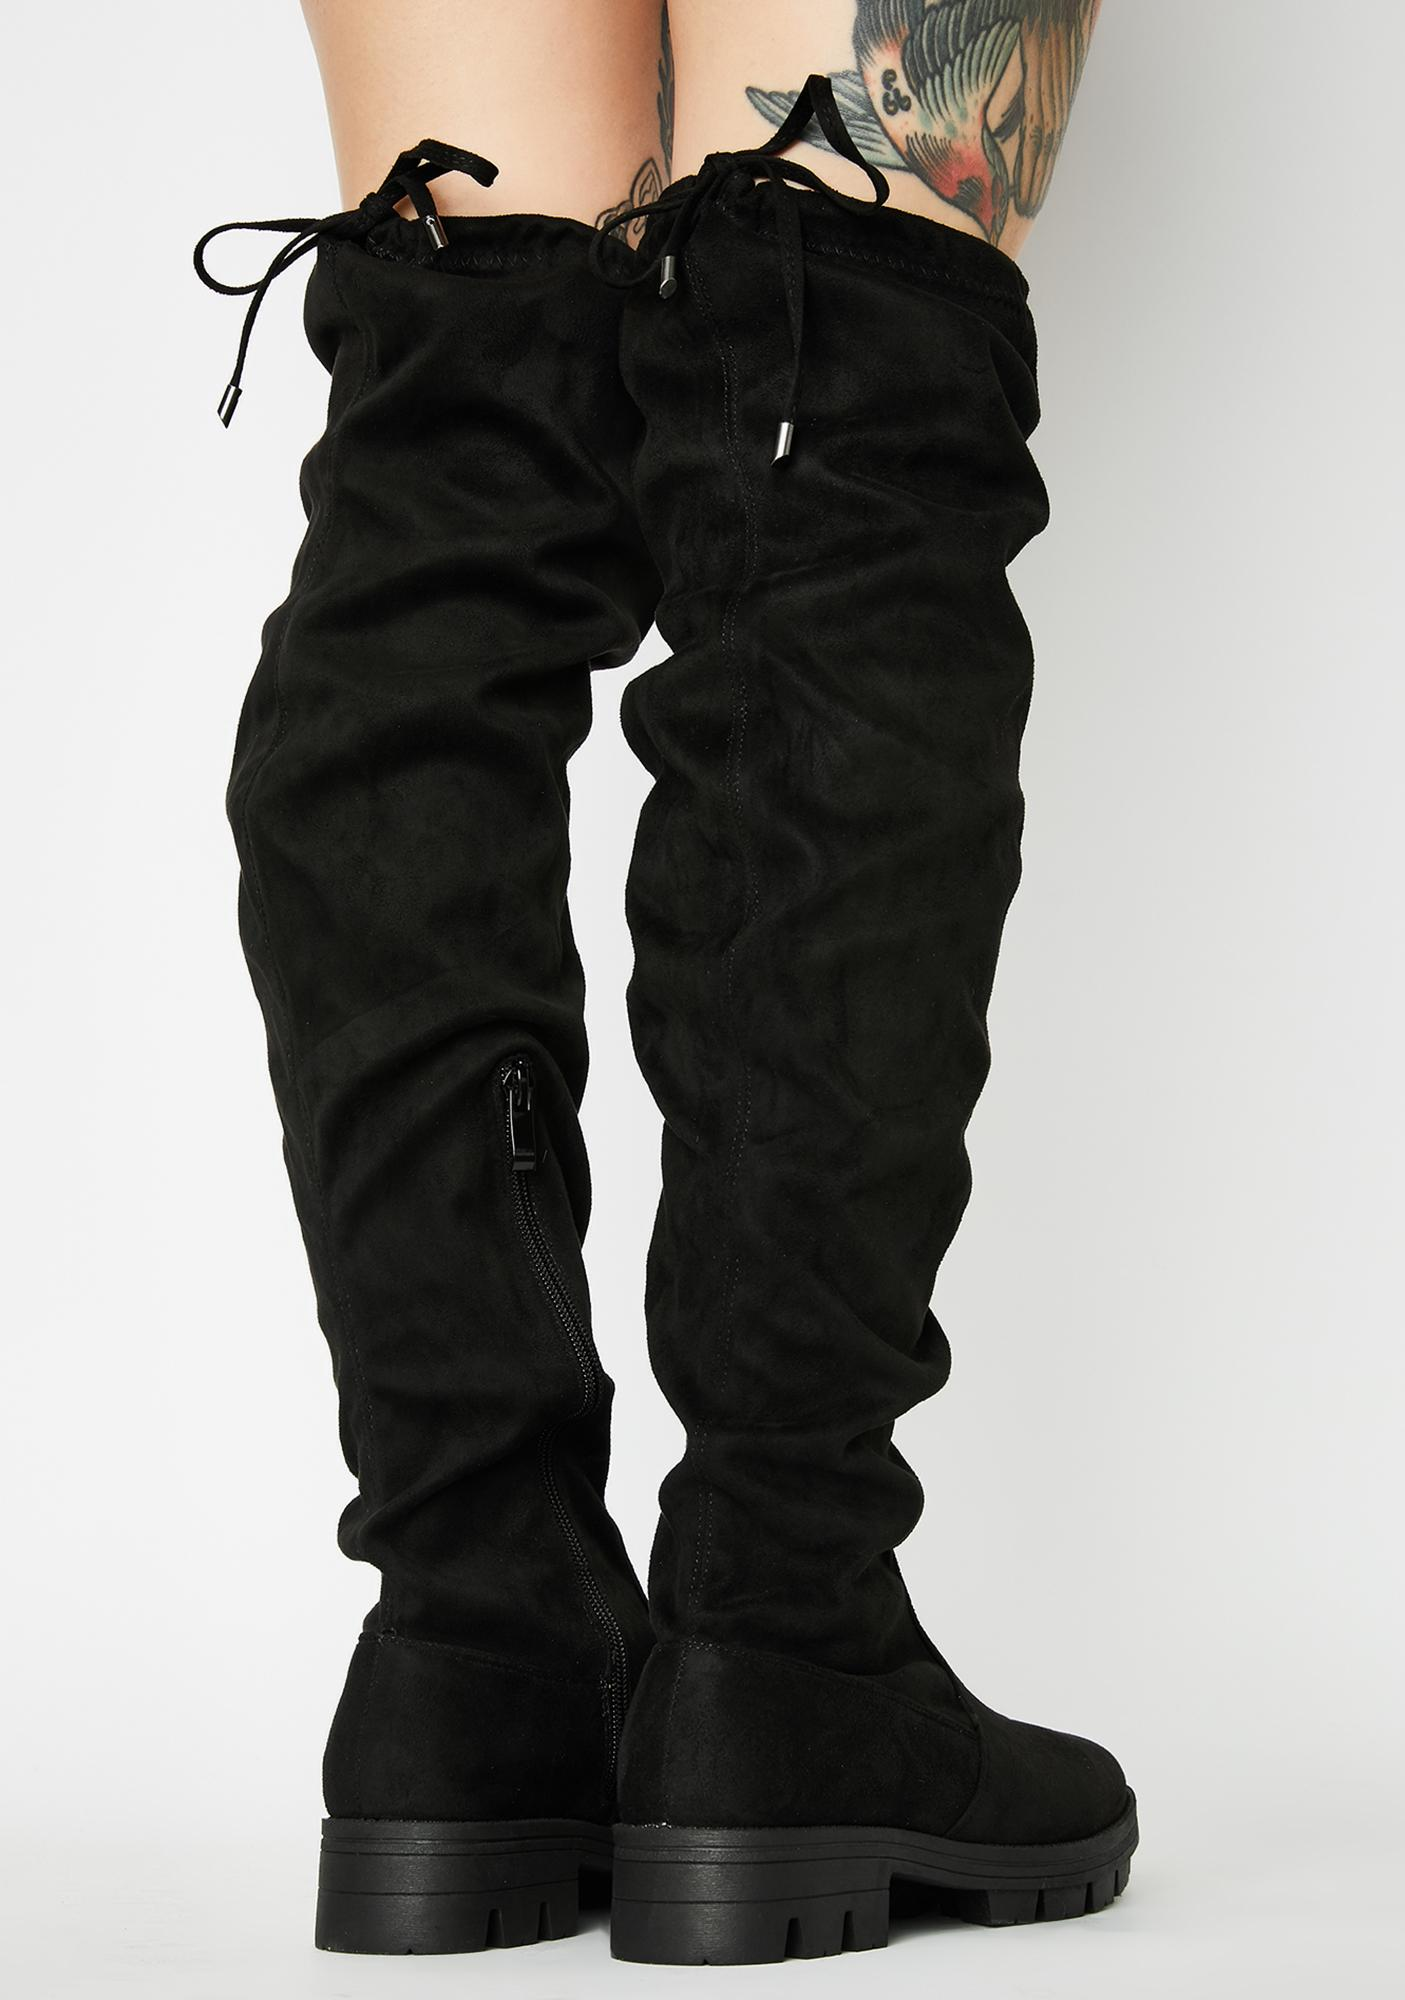 Fame Games Knee High Boots